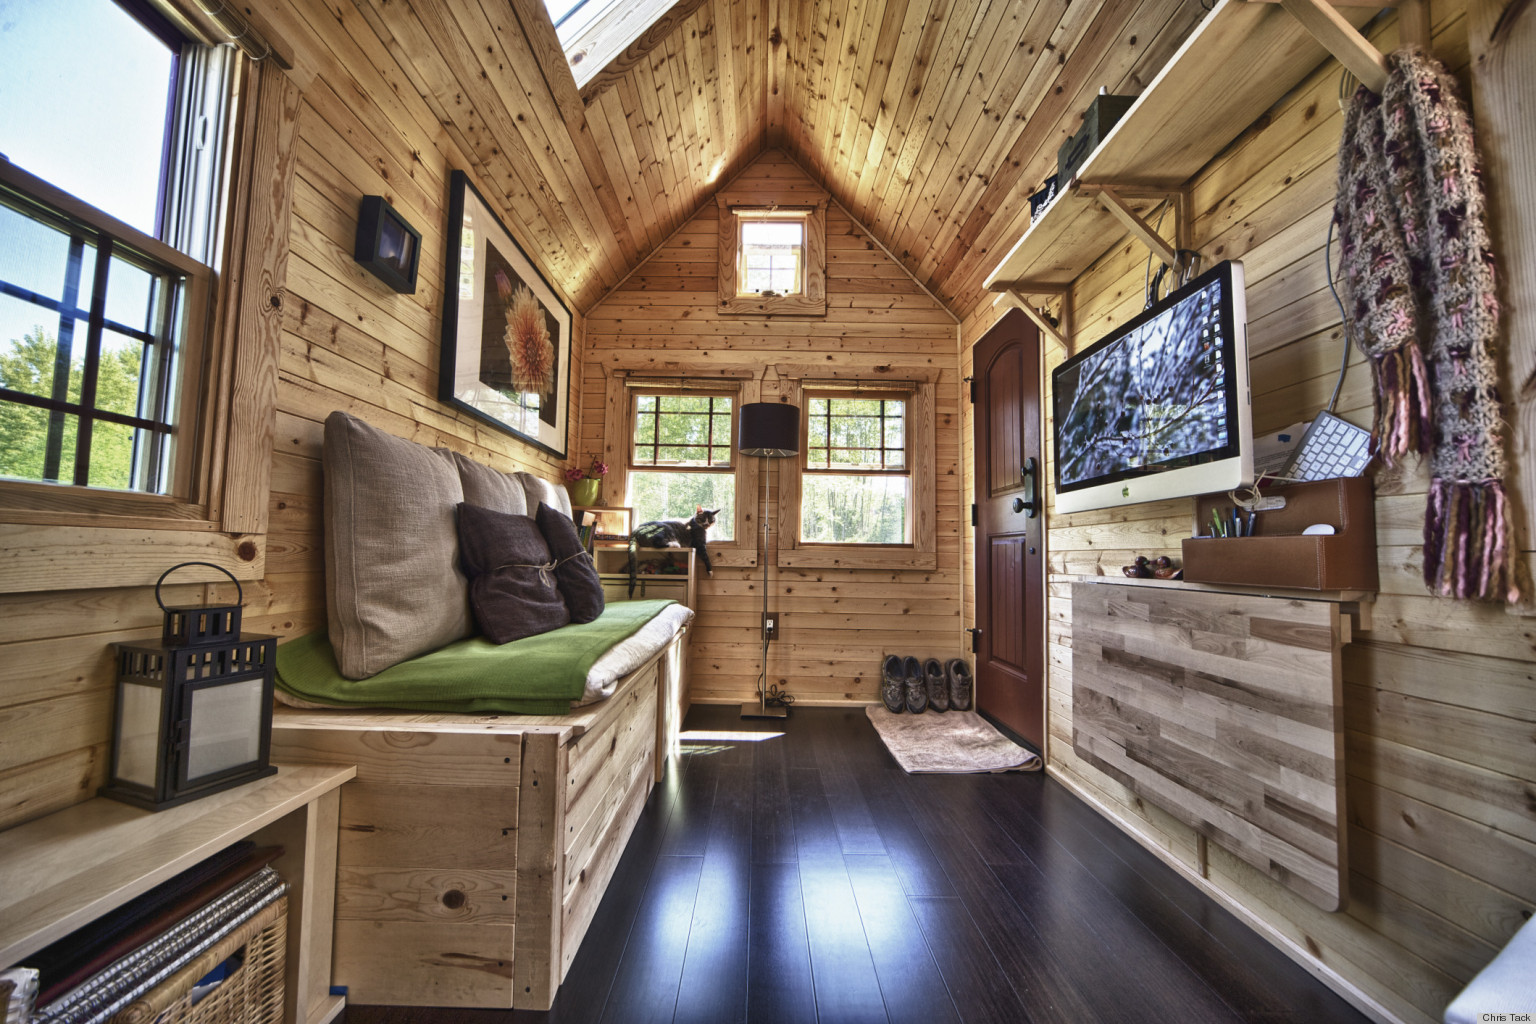 Chris And Malissa Tacku0027s Tiny Home Transformed This High Tech Couple Into  Simple Living Converts (PHOTOS) | HuffPost